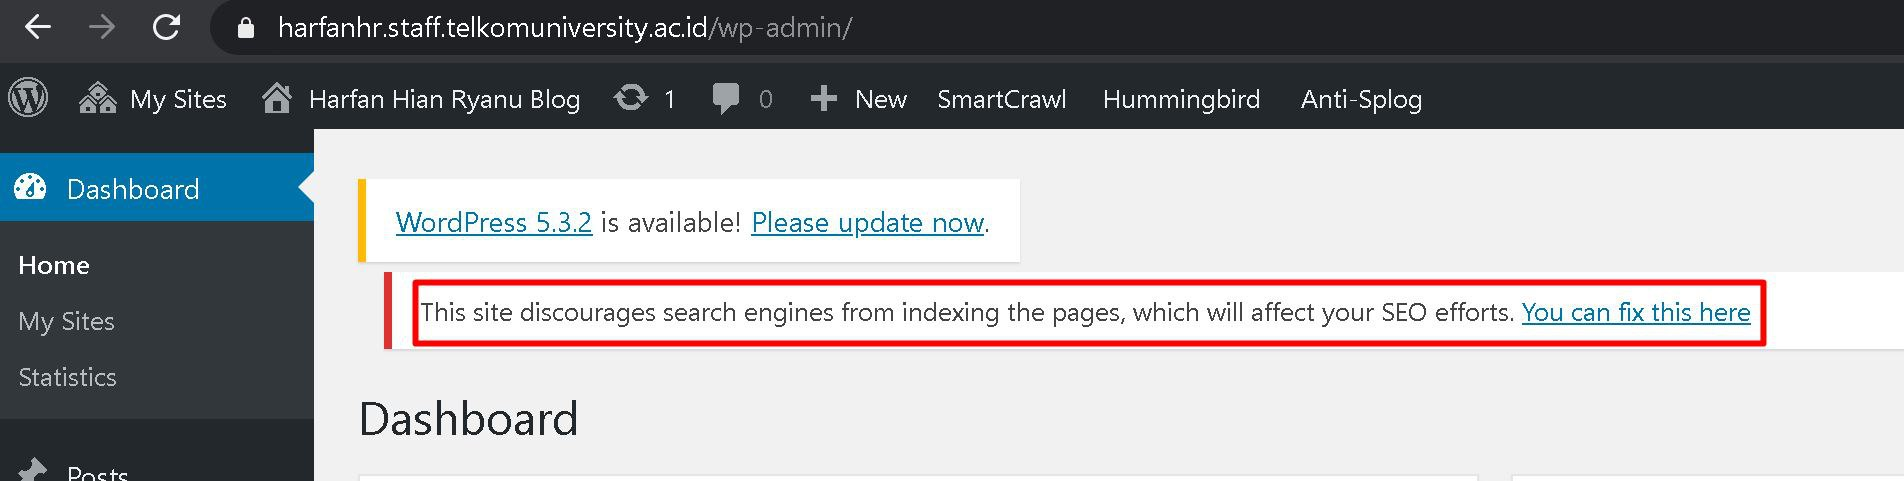 discourage this website from search engine bad for SEO